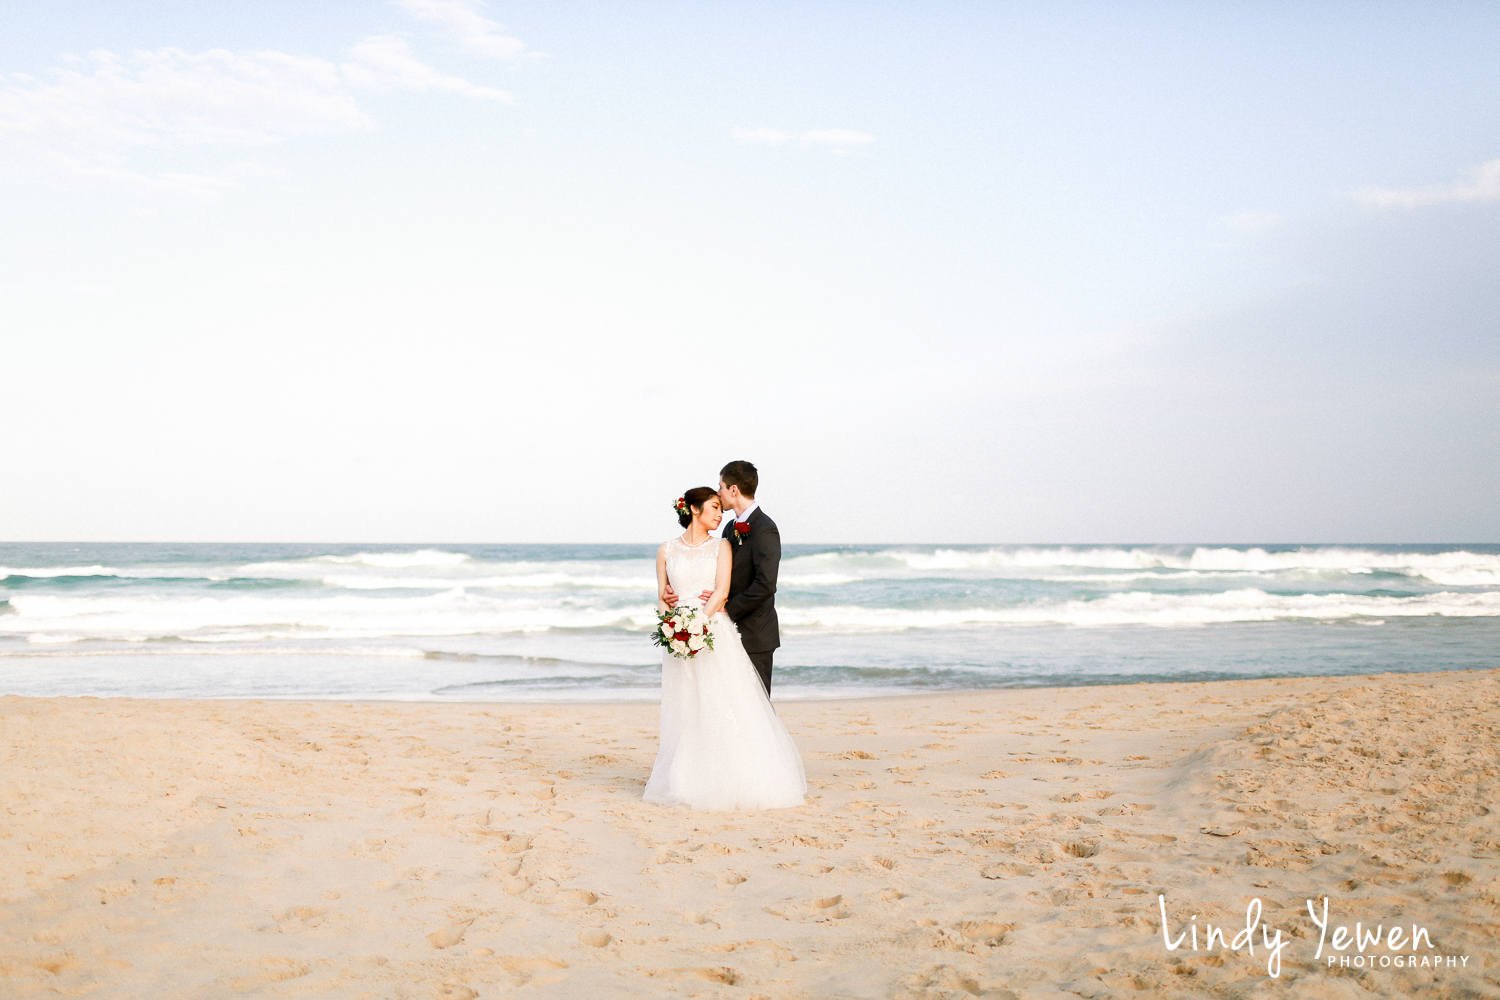 Sunshine-Beach-Weddings-Dimitrije-Maria 149.jpg